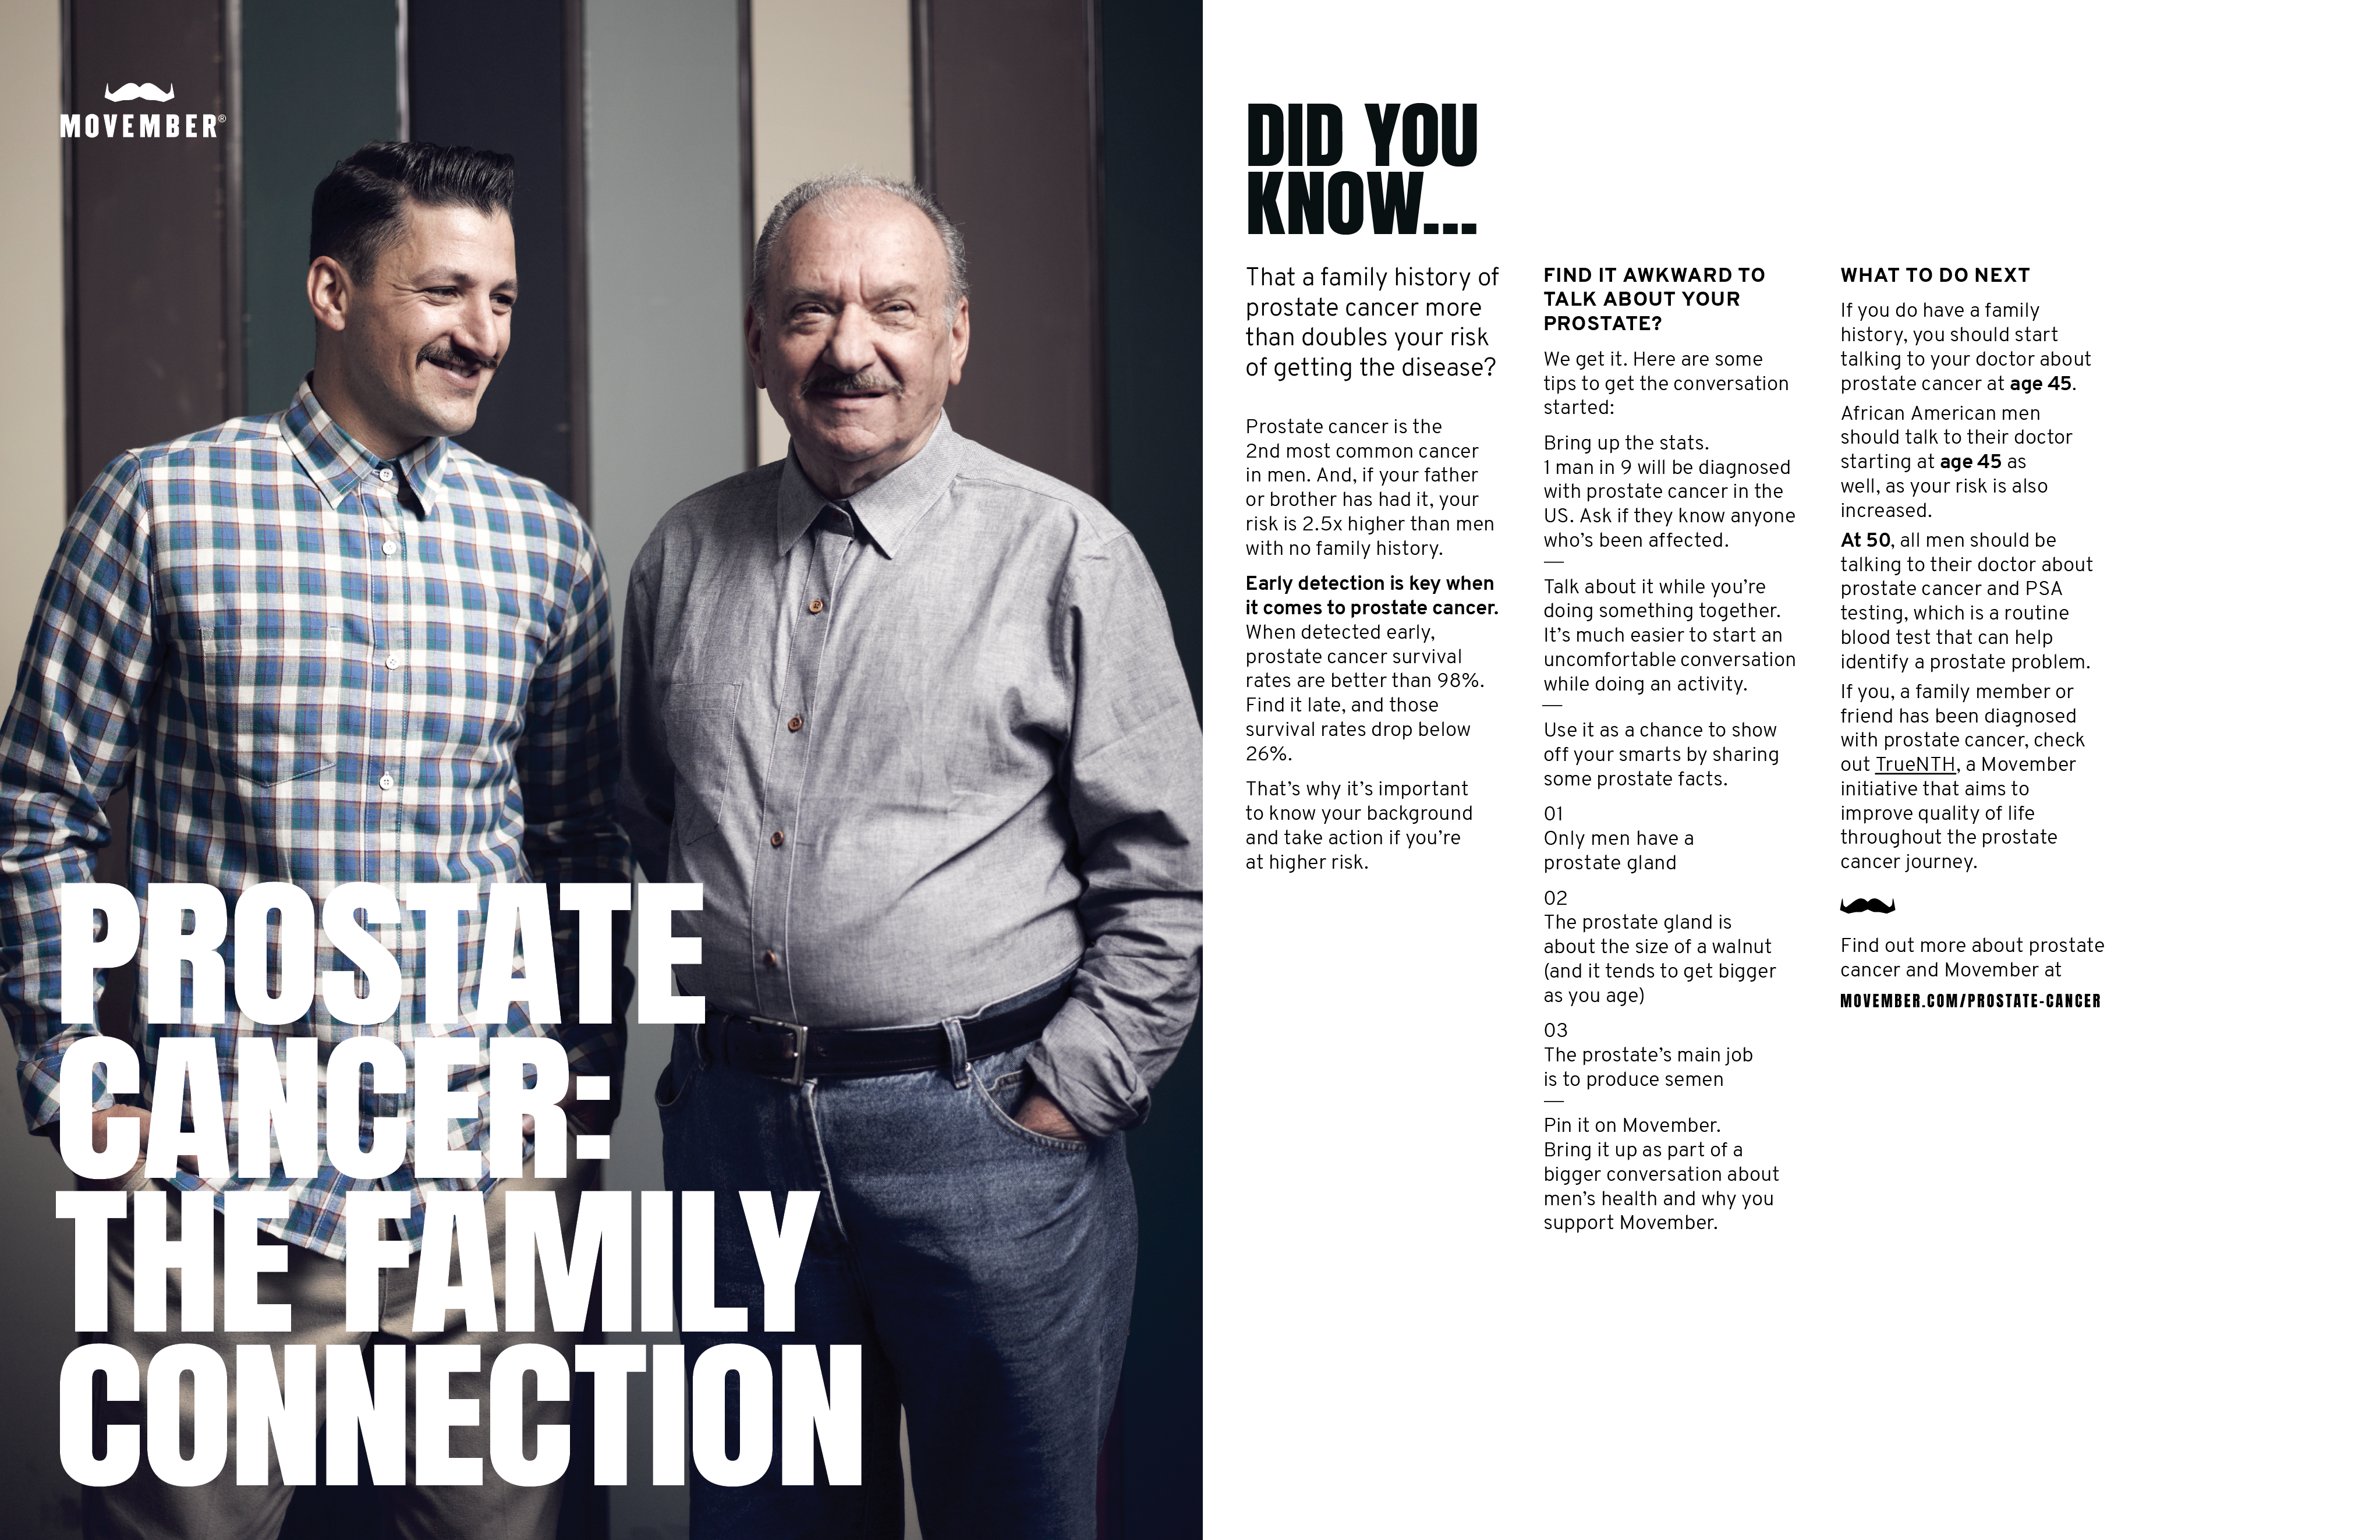 Prostate Cancer: The Family Connection. Family History and Prostate Cancer Risk. Click to Download PDF